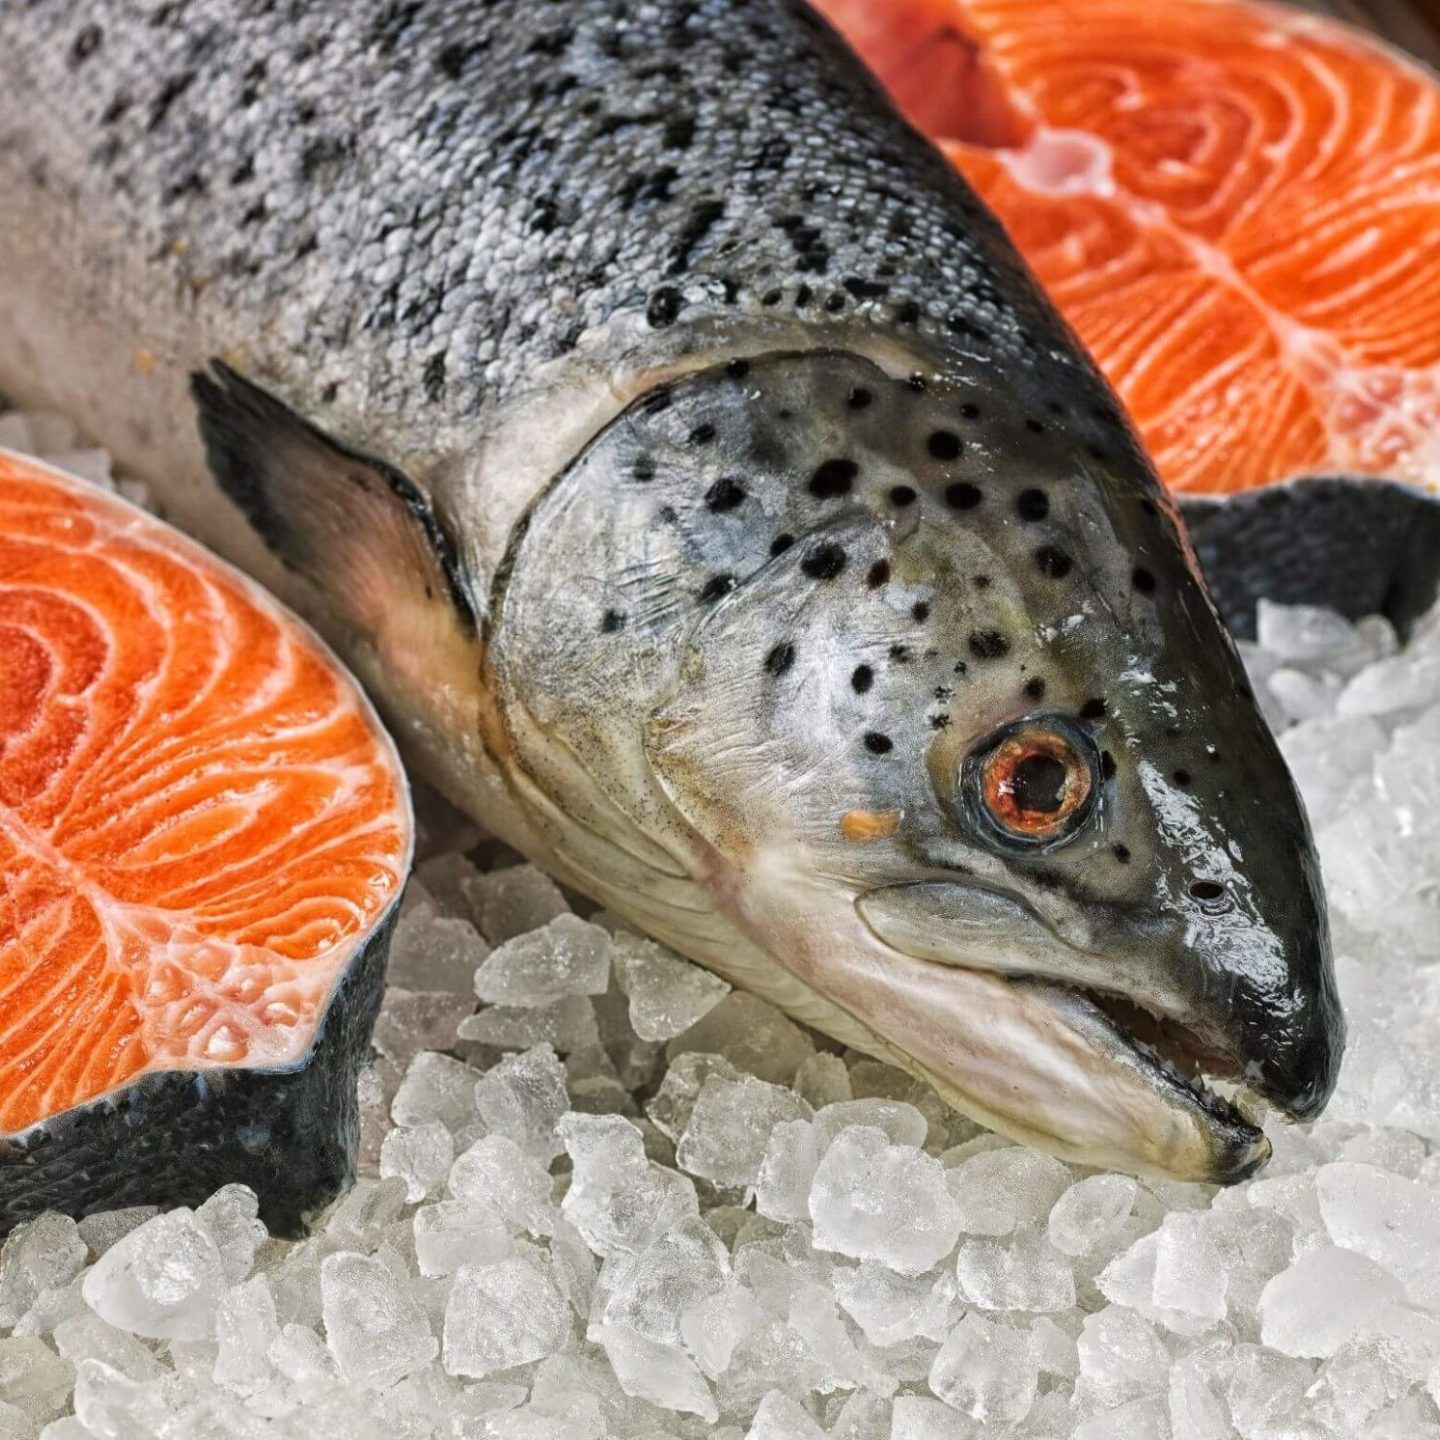 Fish resting on ice - Tips on Making Sure Your Fish Is Real   NSF International